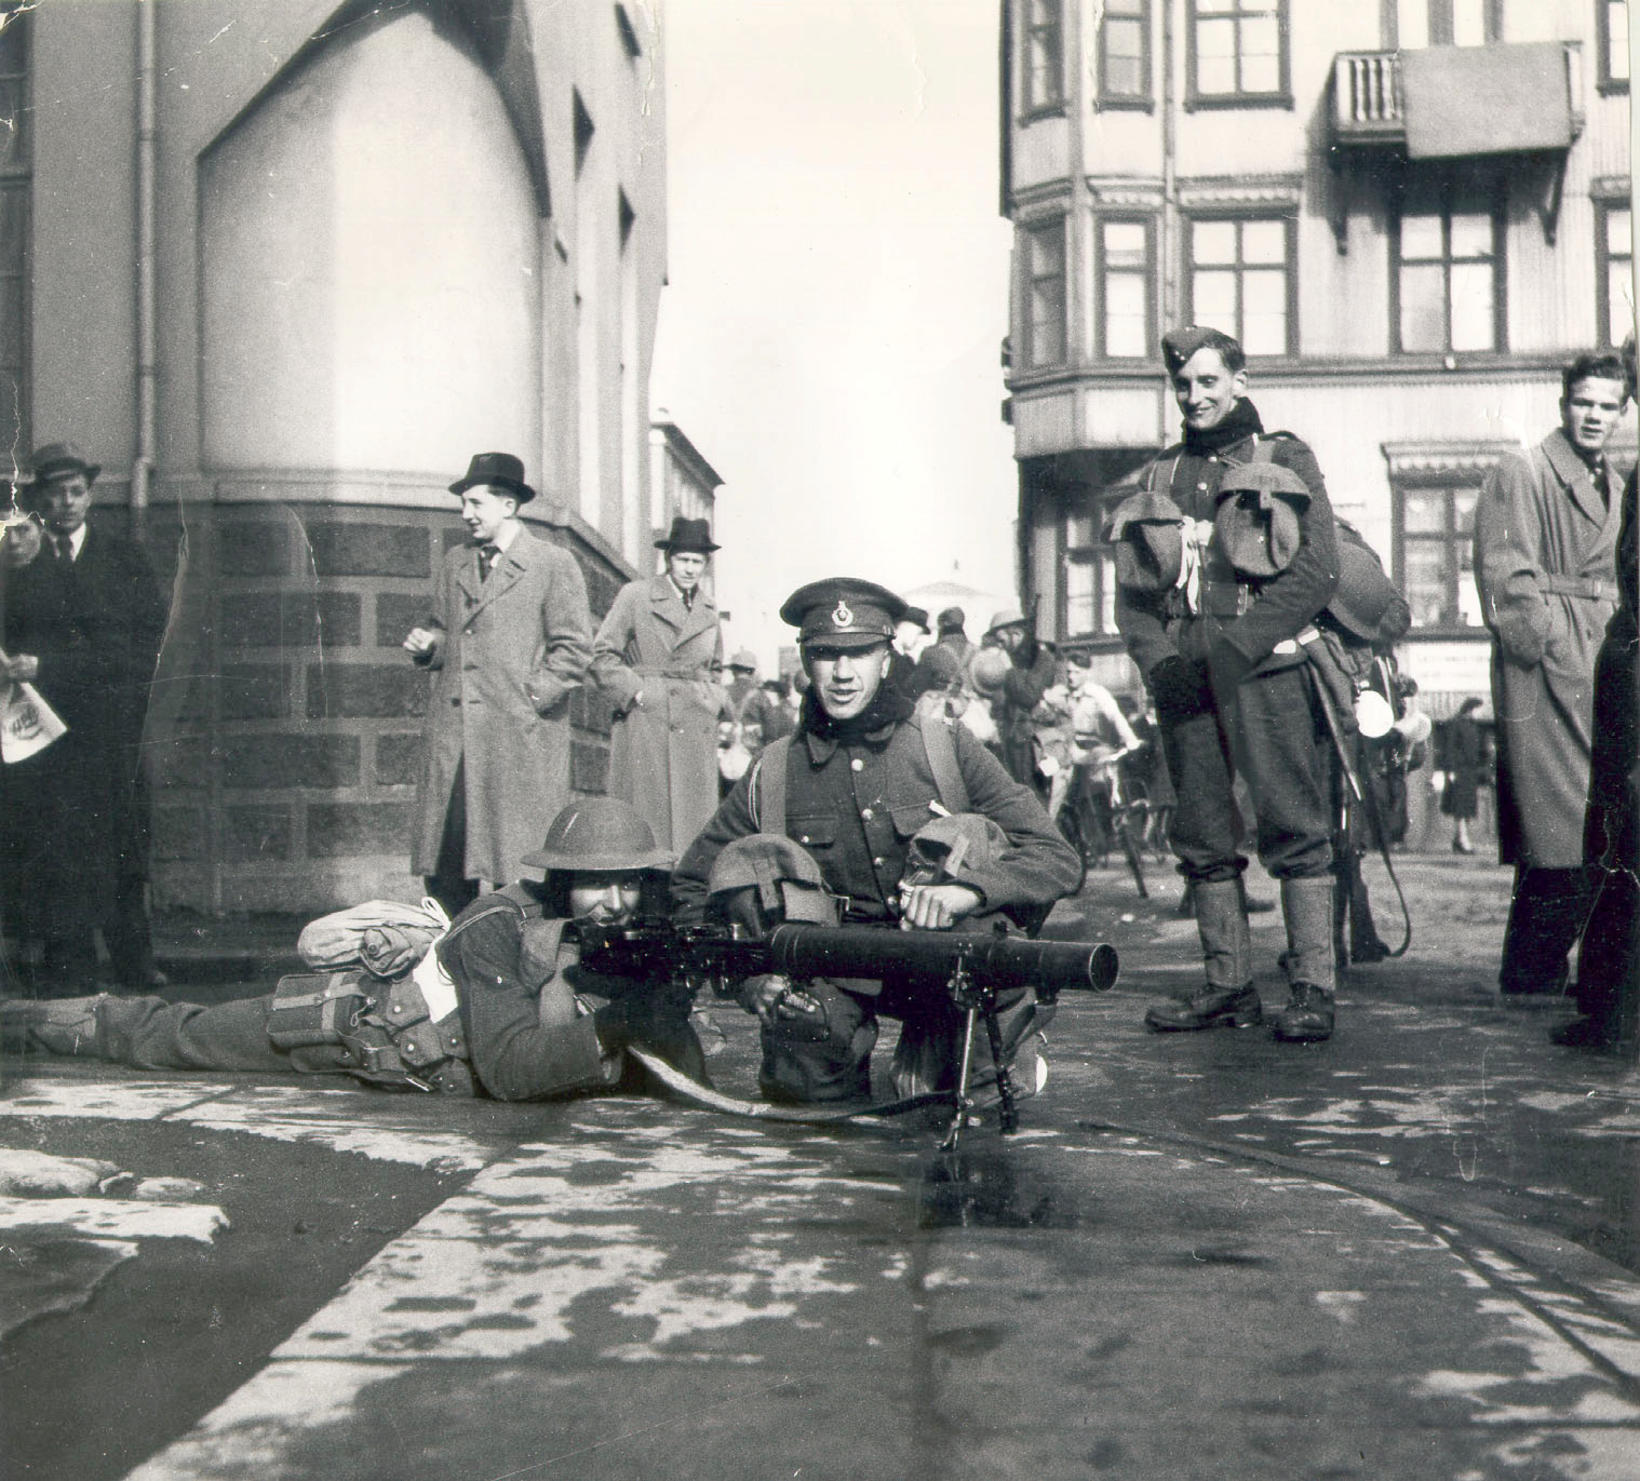 A famous photo from May 10, 1940. British soldiers on …